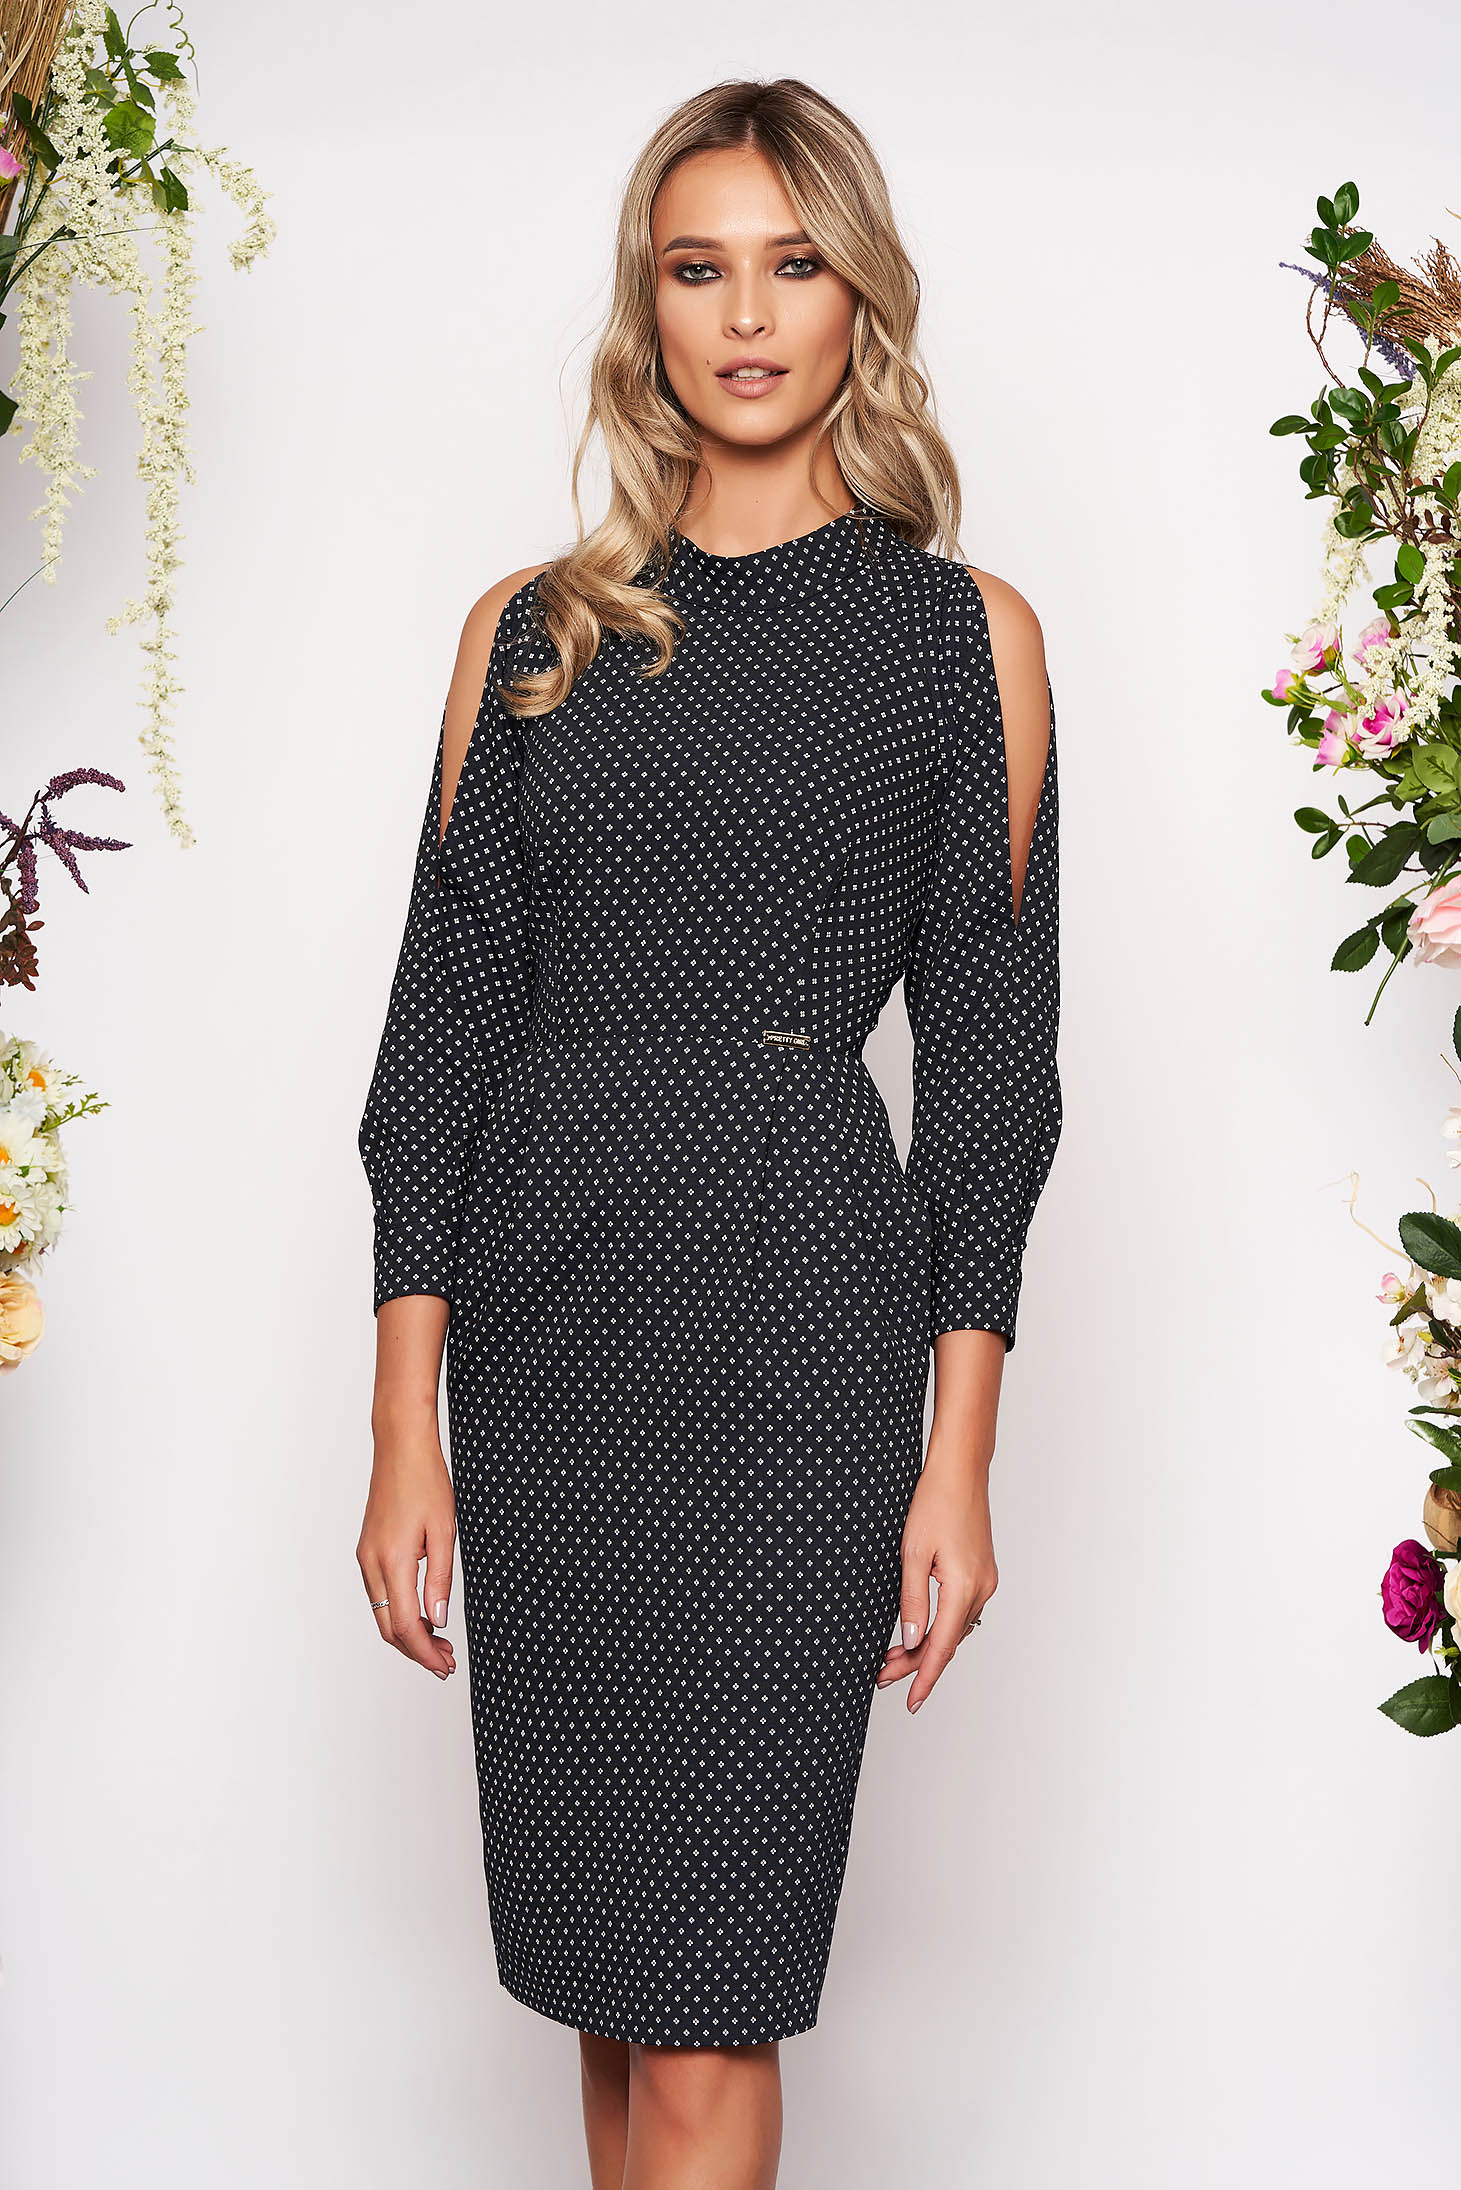 Black dress elegant midi pencil with turtle neck with pockets both shoulders cut out with graphic details